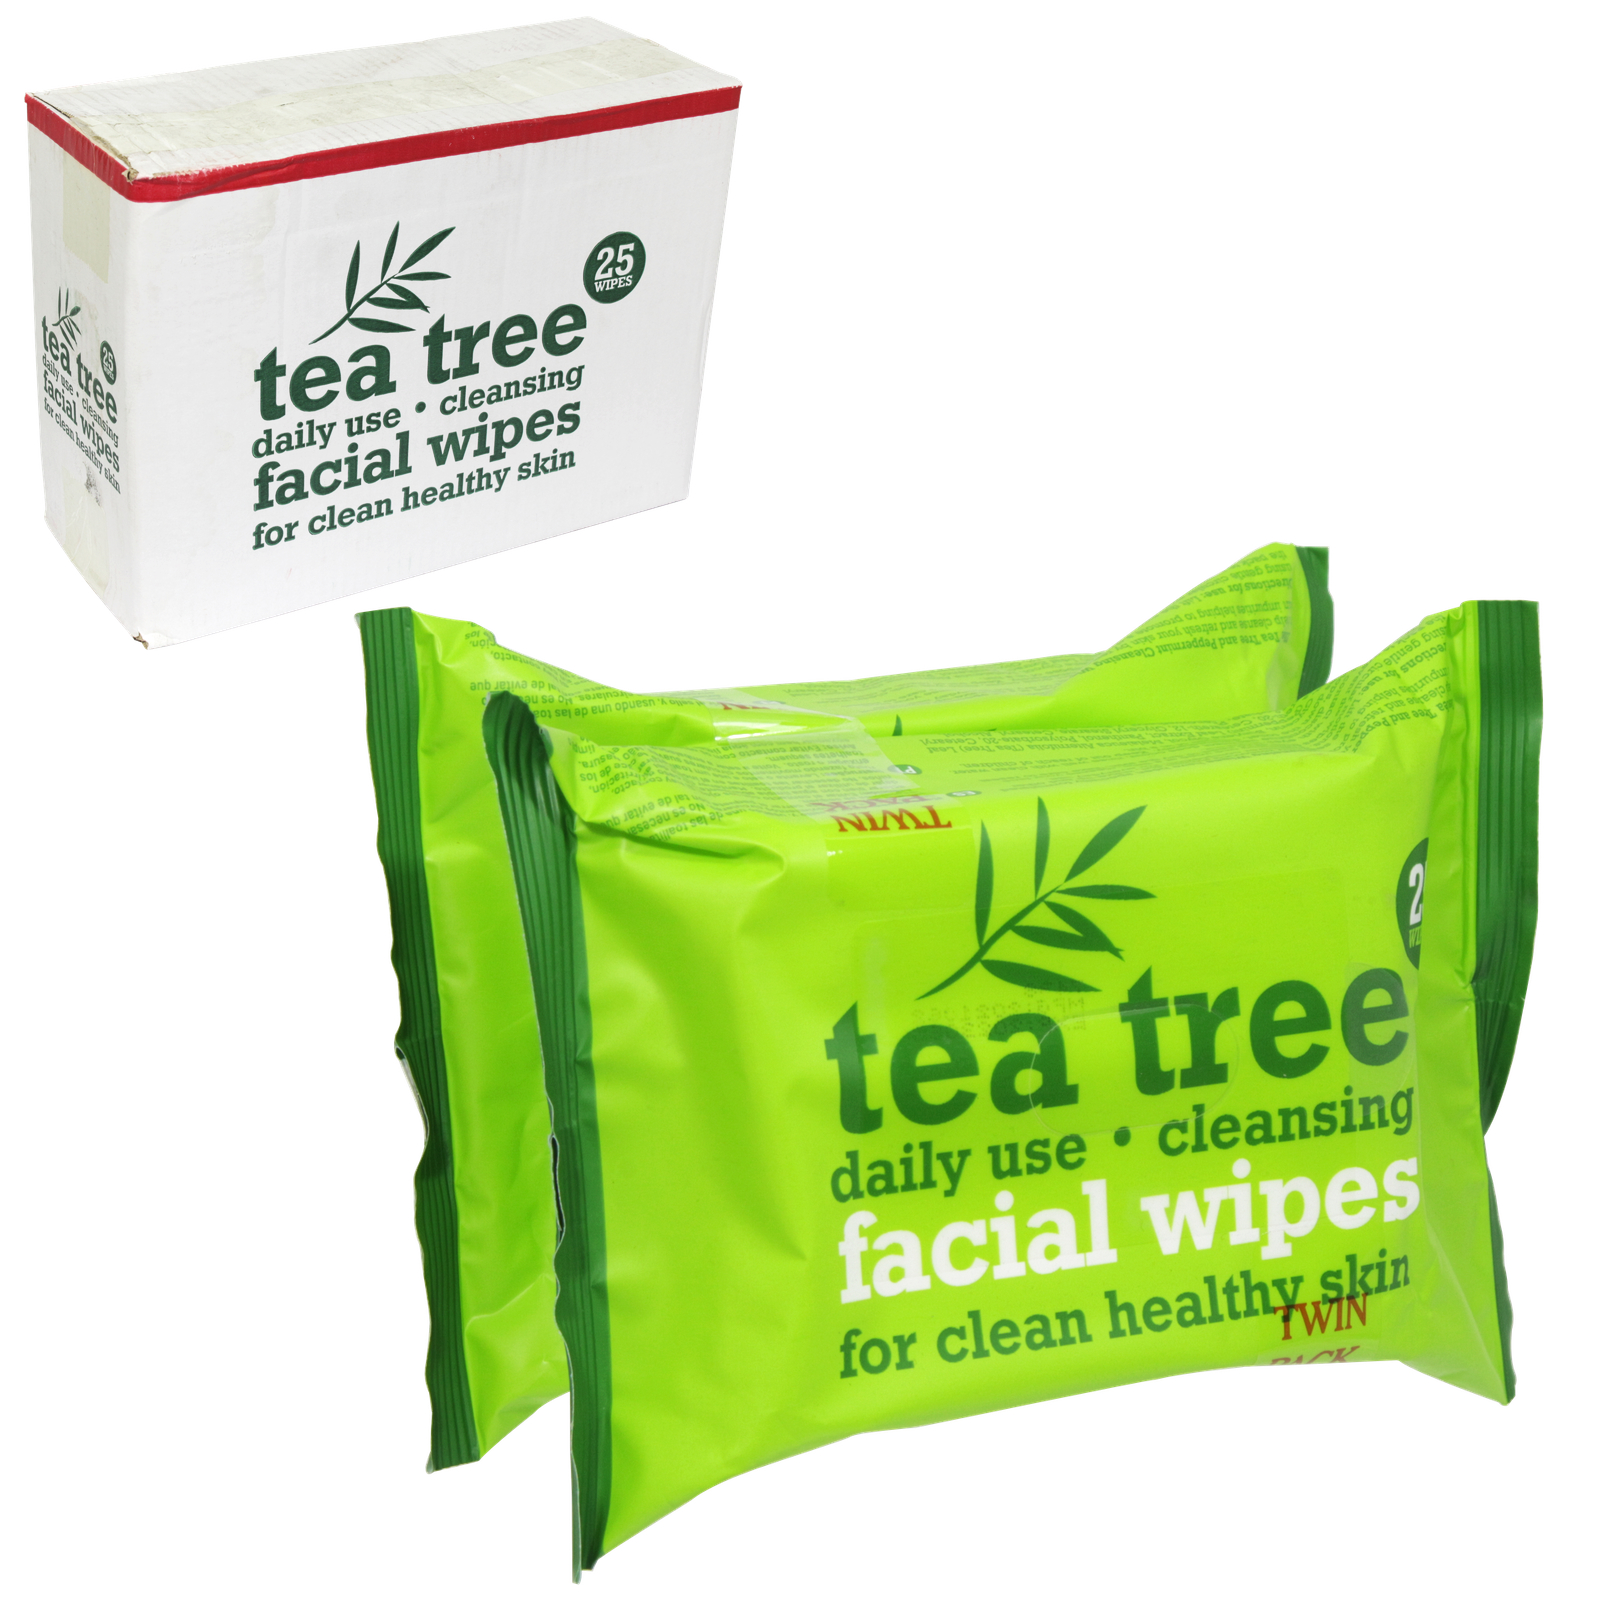 TEA TREE CLEANSING FACE WIPES 2X25S X12